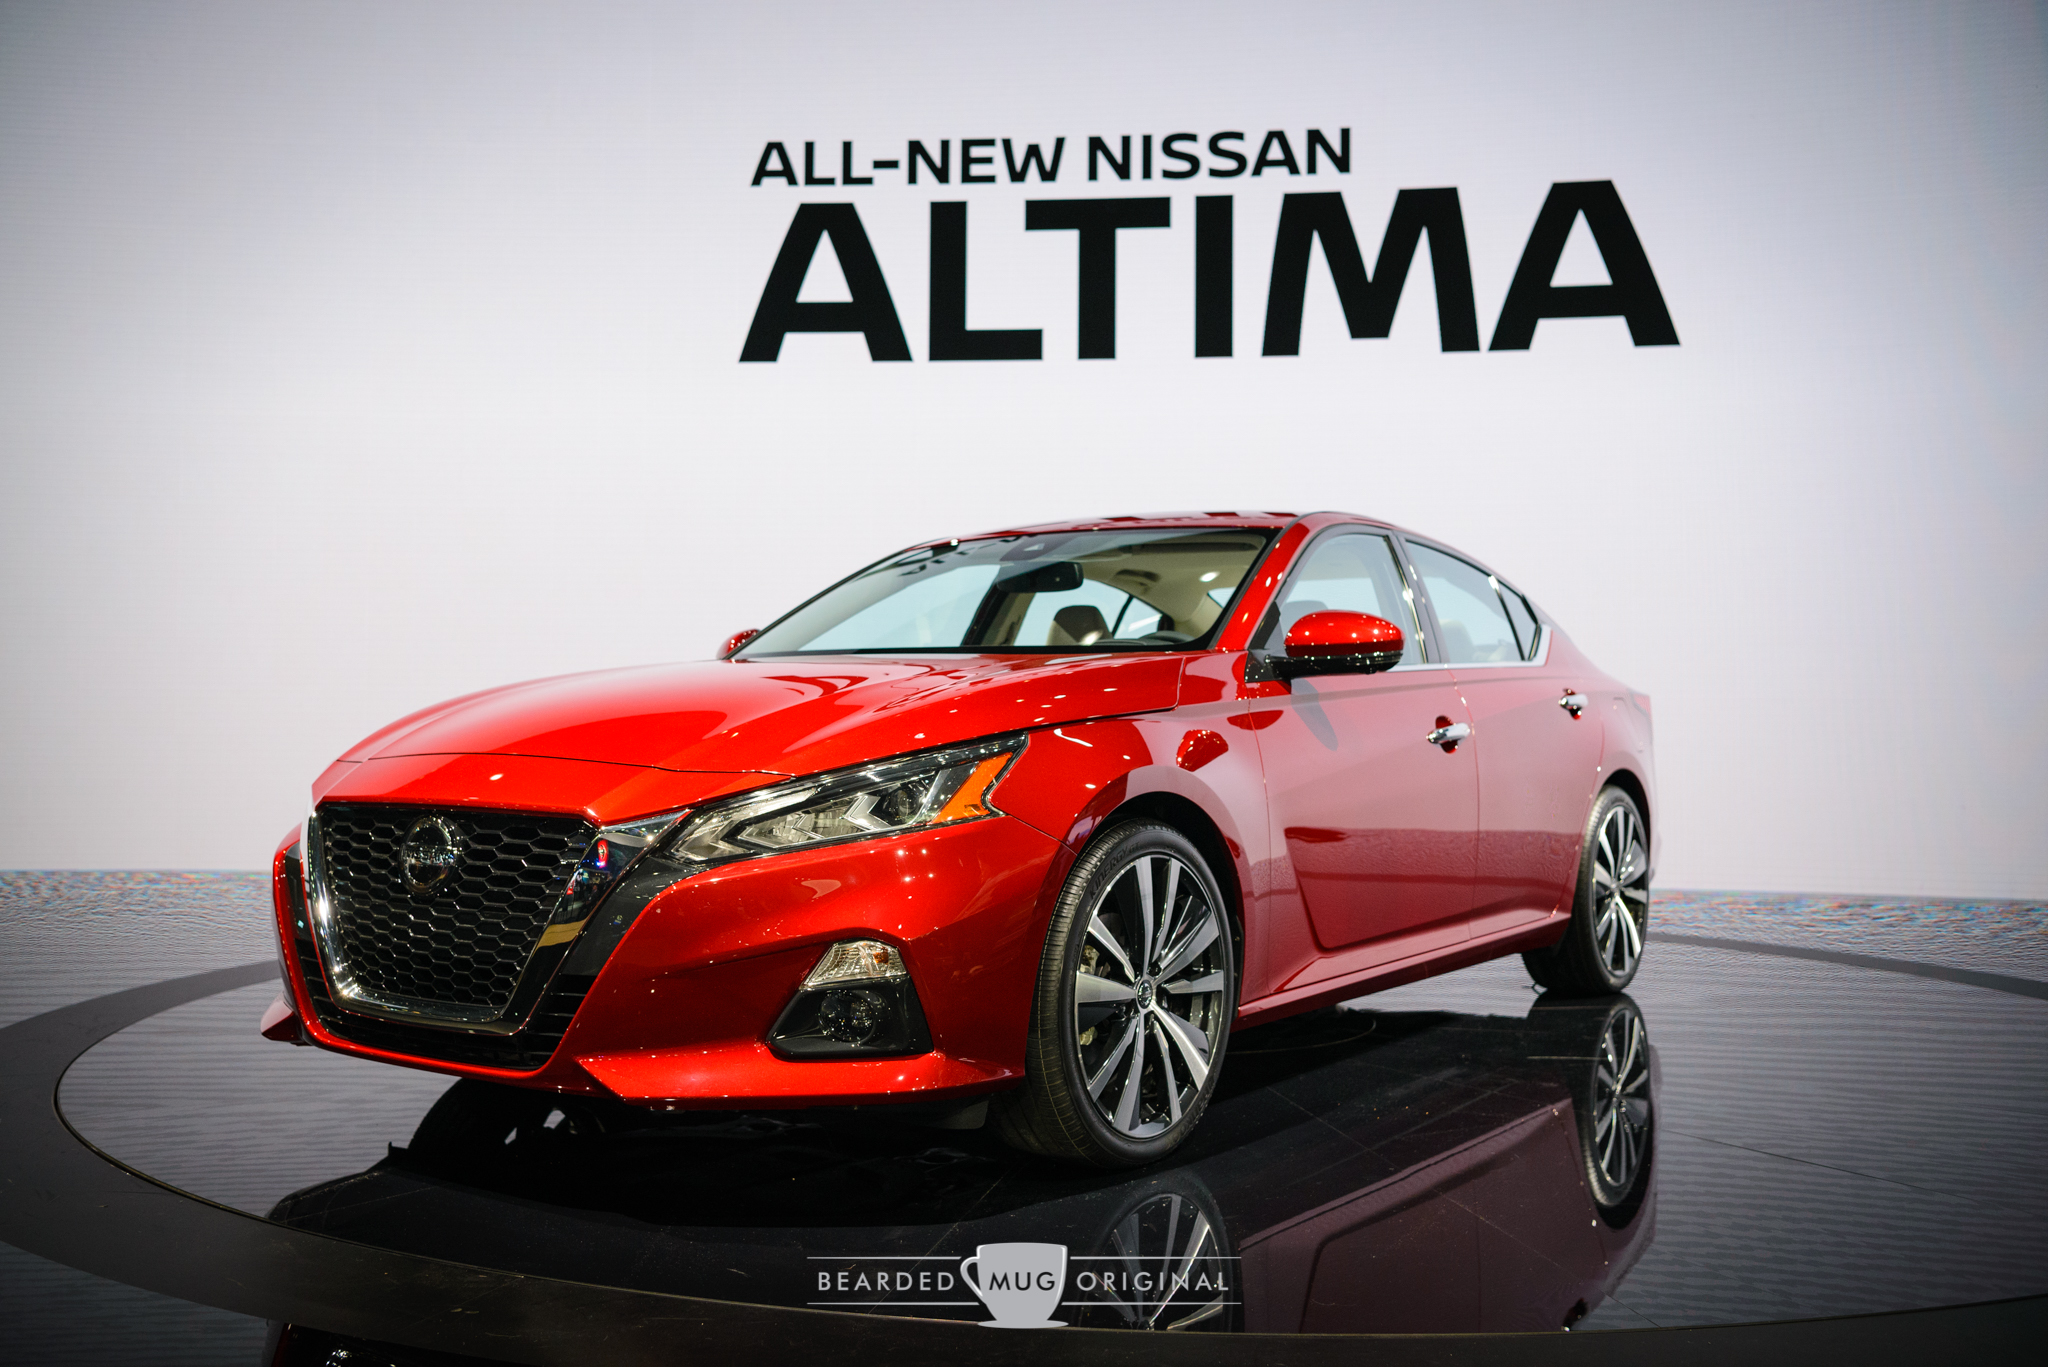 The all-new Nissan Altima that's going to set the segment on its head.